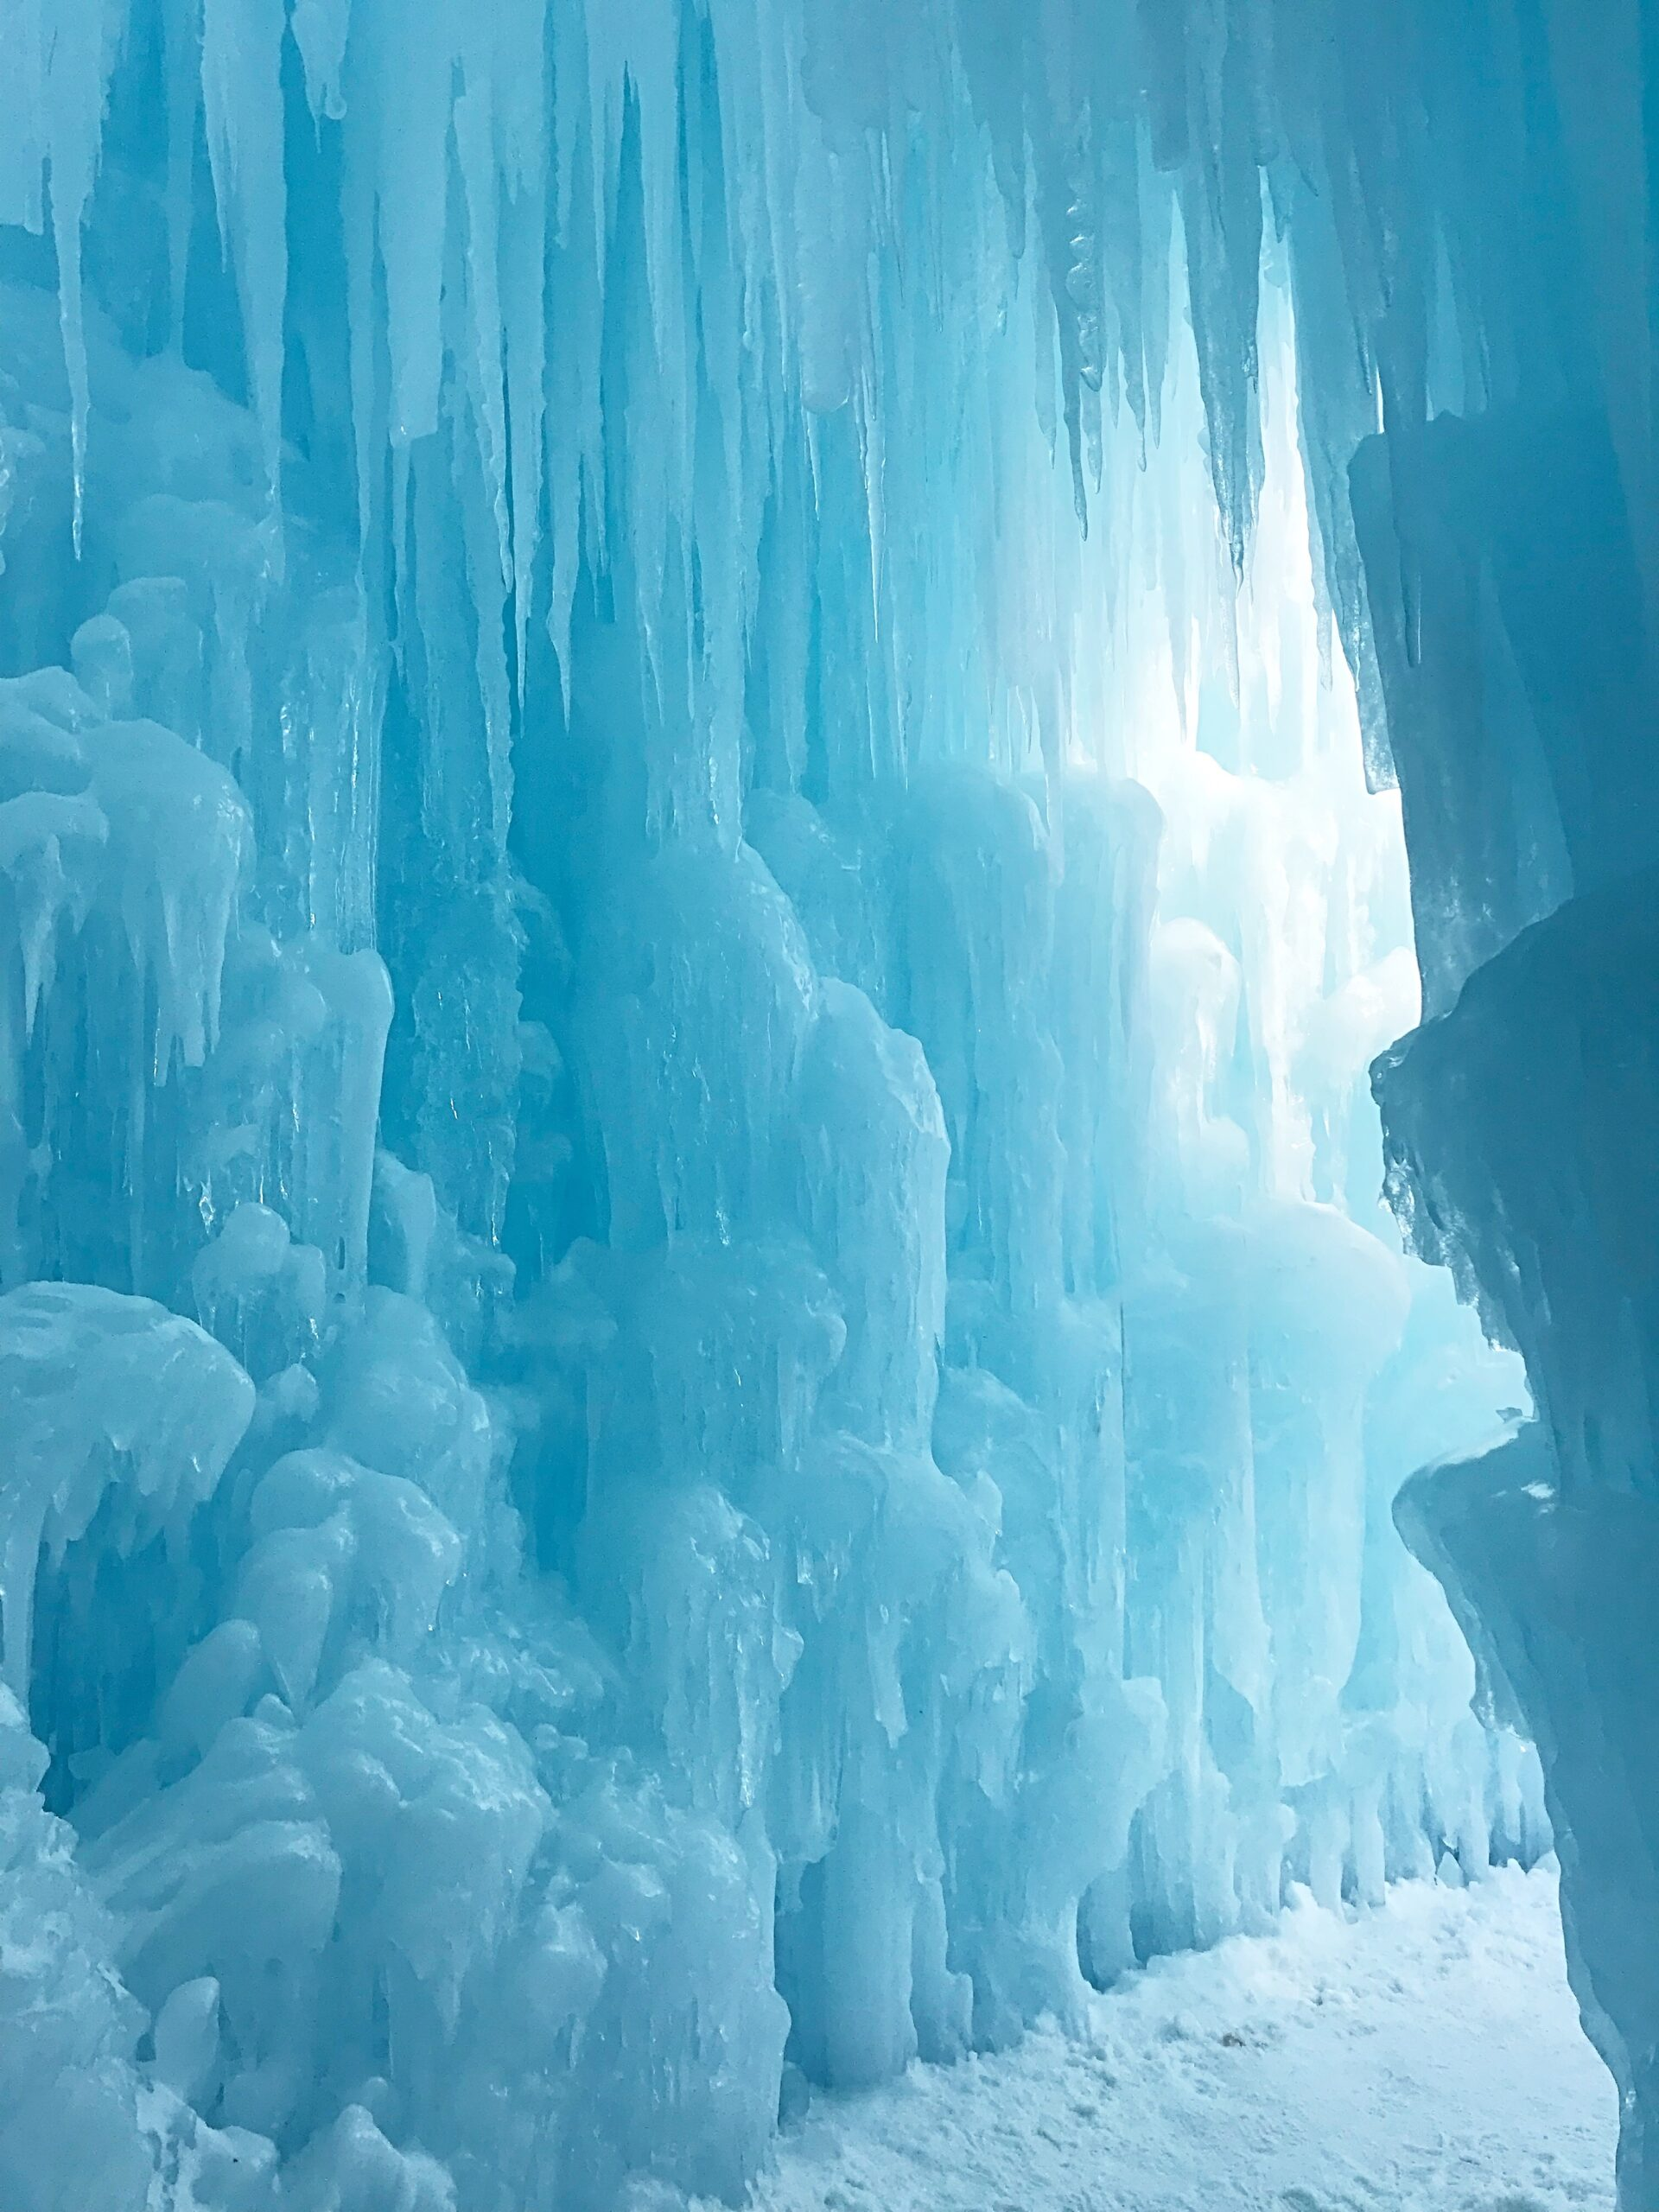 ice castles outfit, ice castles photoshoot, top things to do nh, new england travel guide Disney Frozen Winter Wonderland real life Arendelle